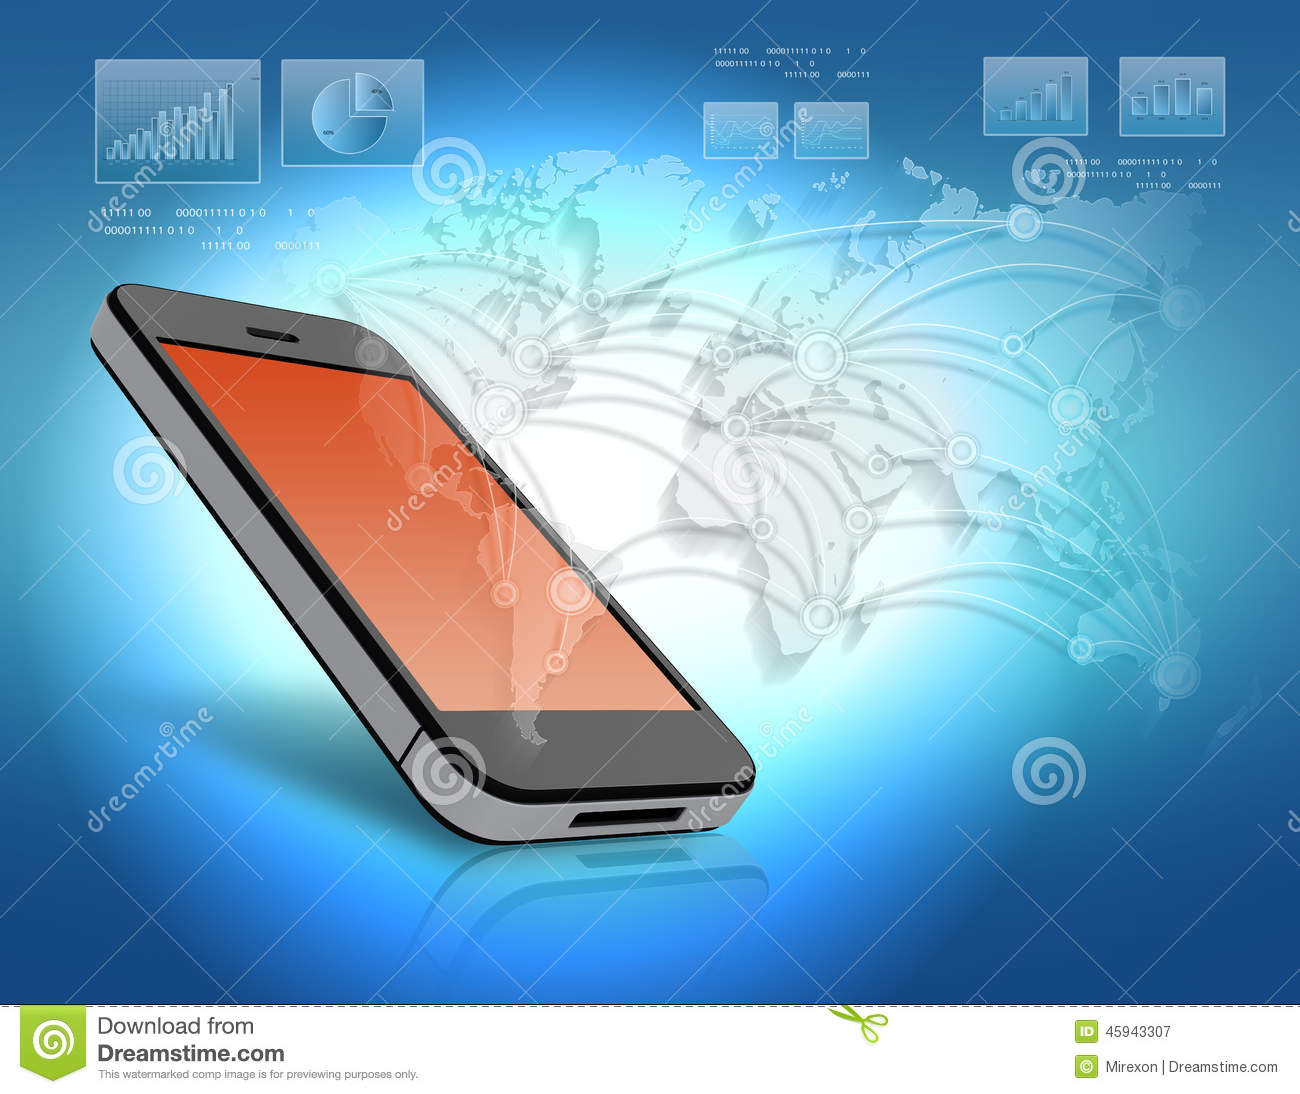 Mobile phone with orange screen and world map stock illustration mobile phone with orange screen and world map royalty free illustration download publicscrutiny Choice Image